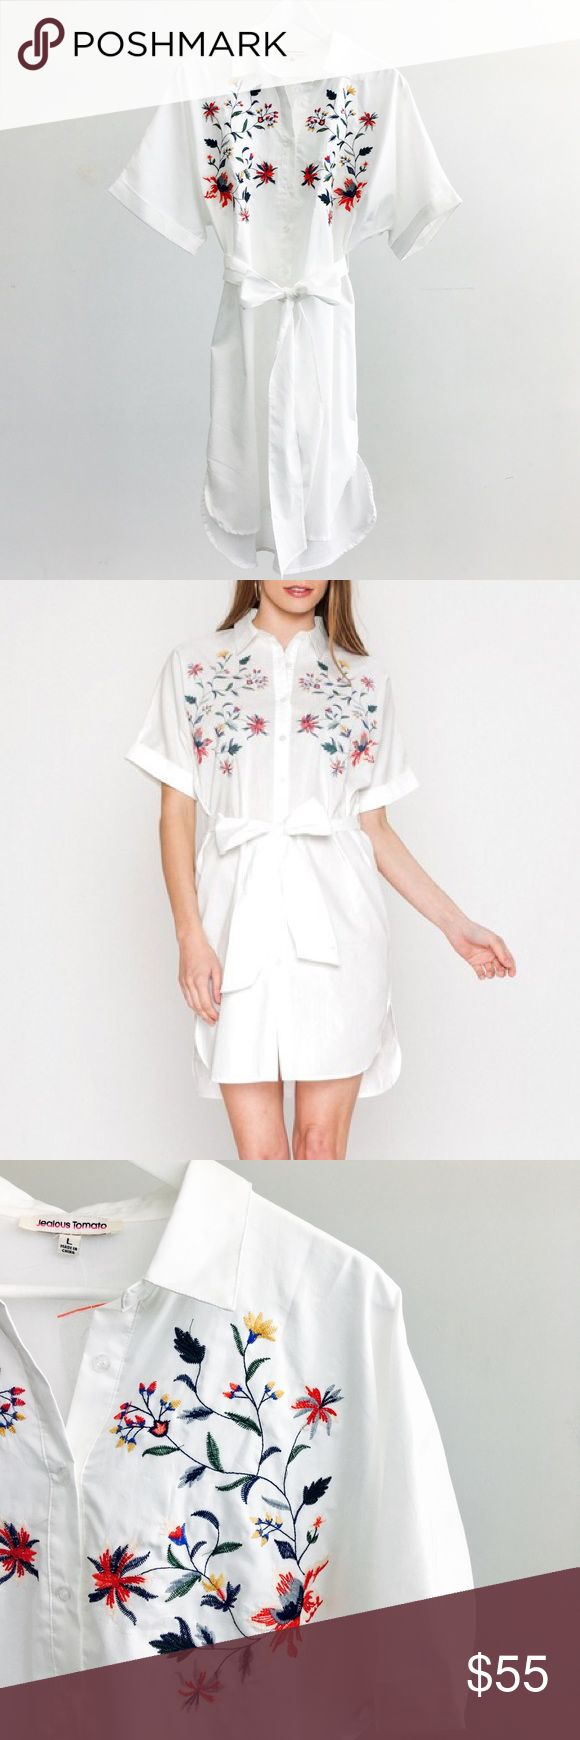 White Floral Embroidered Shirt Dress White short sleeve shirt dress with floral embroidered print, shirttail hem, and self-tie waist. 65% cotton 35% rayon. Brand new. Please carefully review each photo before purchase as they are the best descriptors of the item. My price is firm. No trades. First come, first served. Thank you! :) Dresses